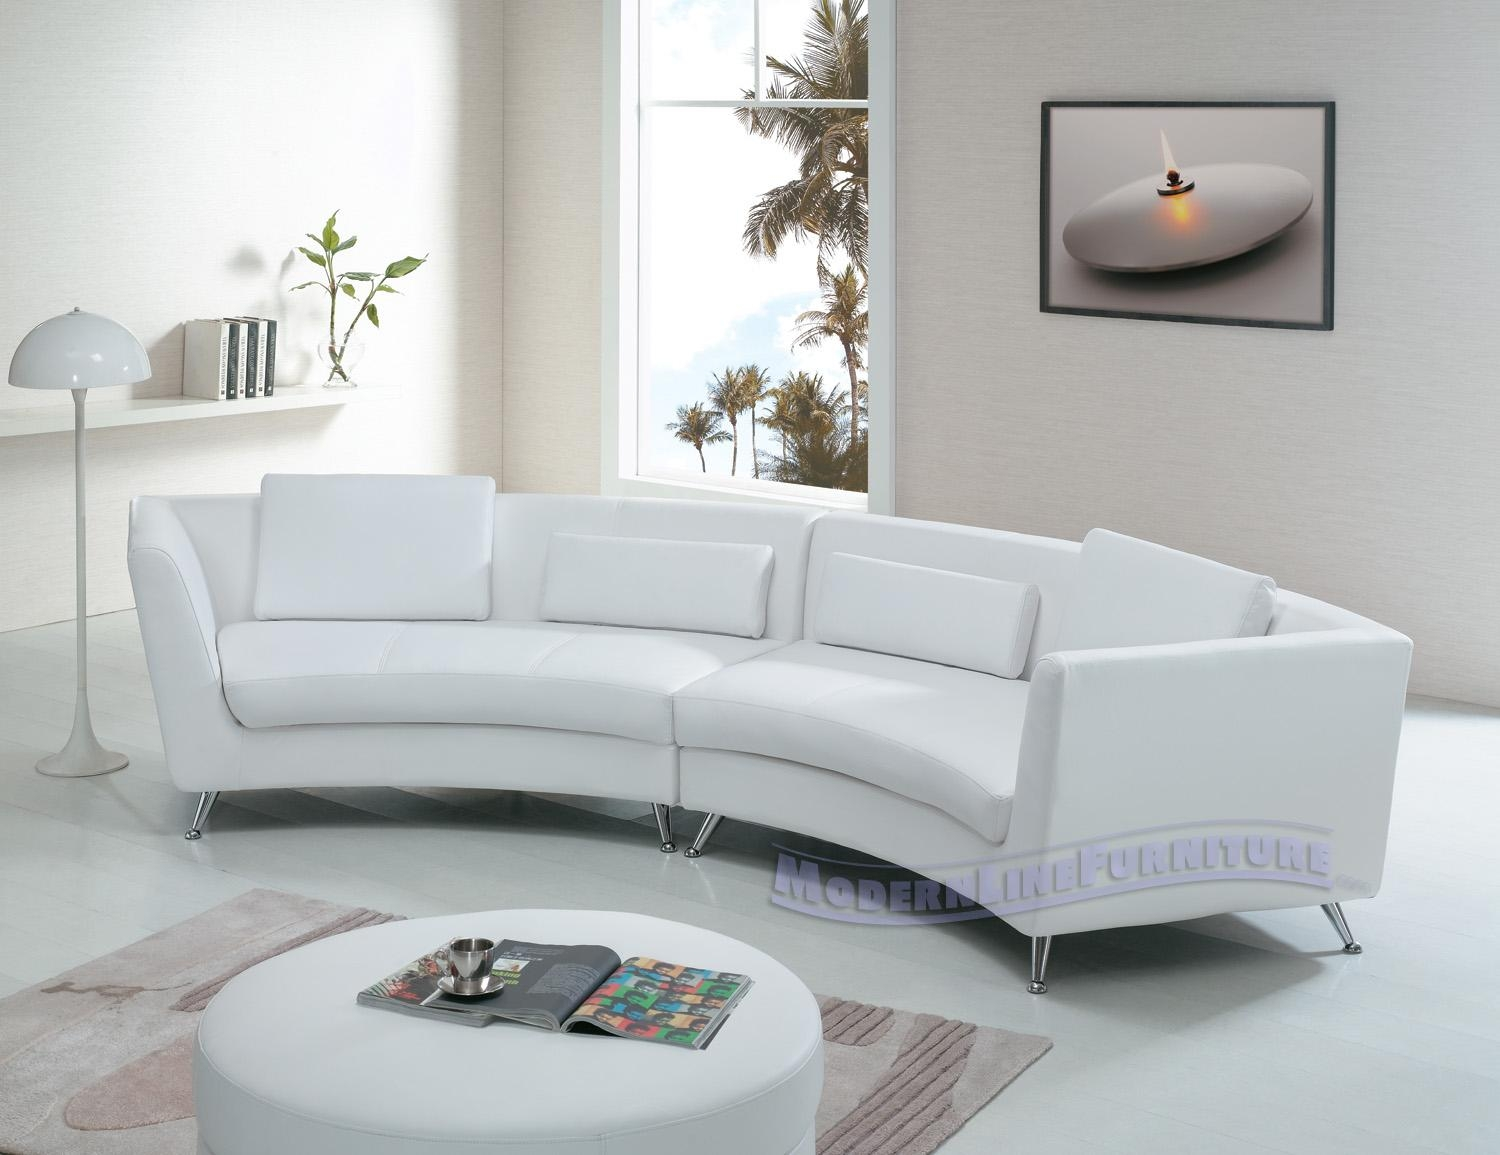 commercial sofas and chairs fabrics for 20 photos sofa ideas